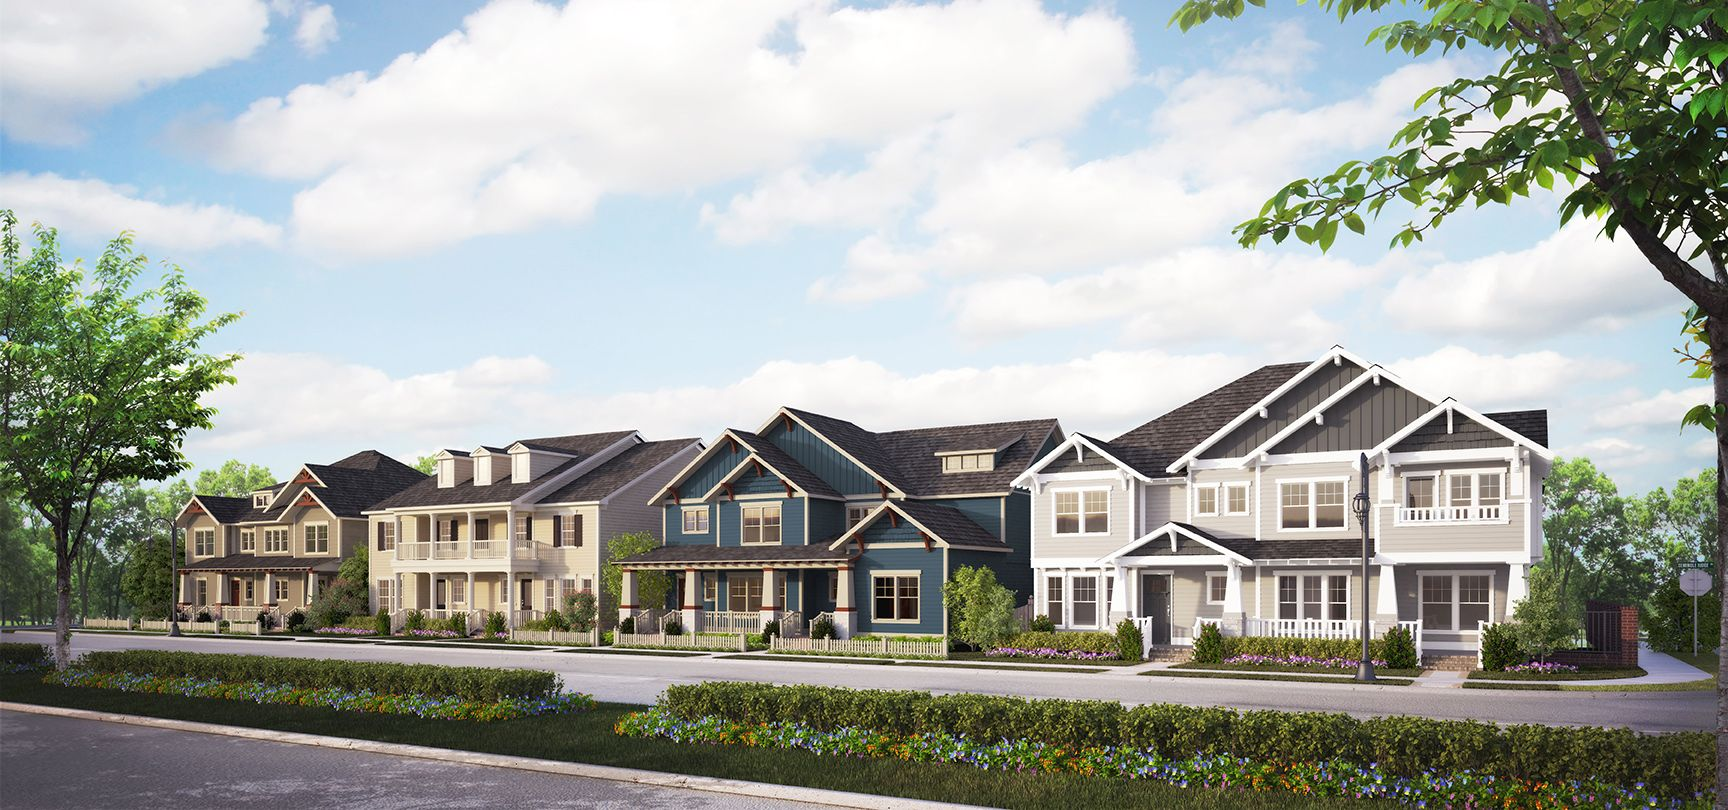 Best Kitchen Gallery: The Townhomes Collection By Perry Homes Bridgeland Pinterest of Perry Homes Houston on rachelxblog.com